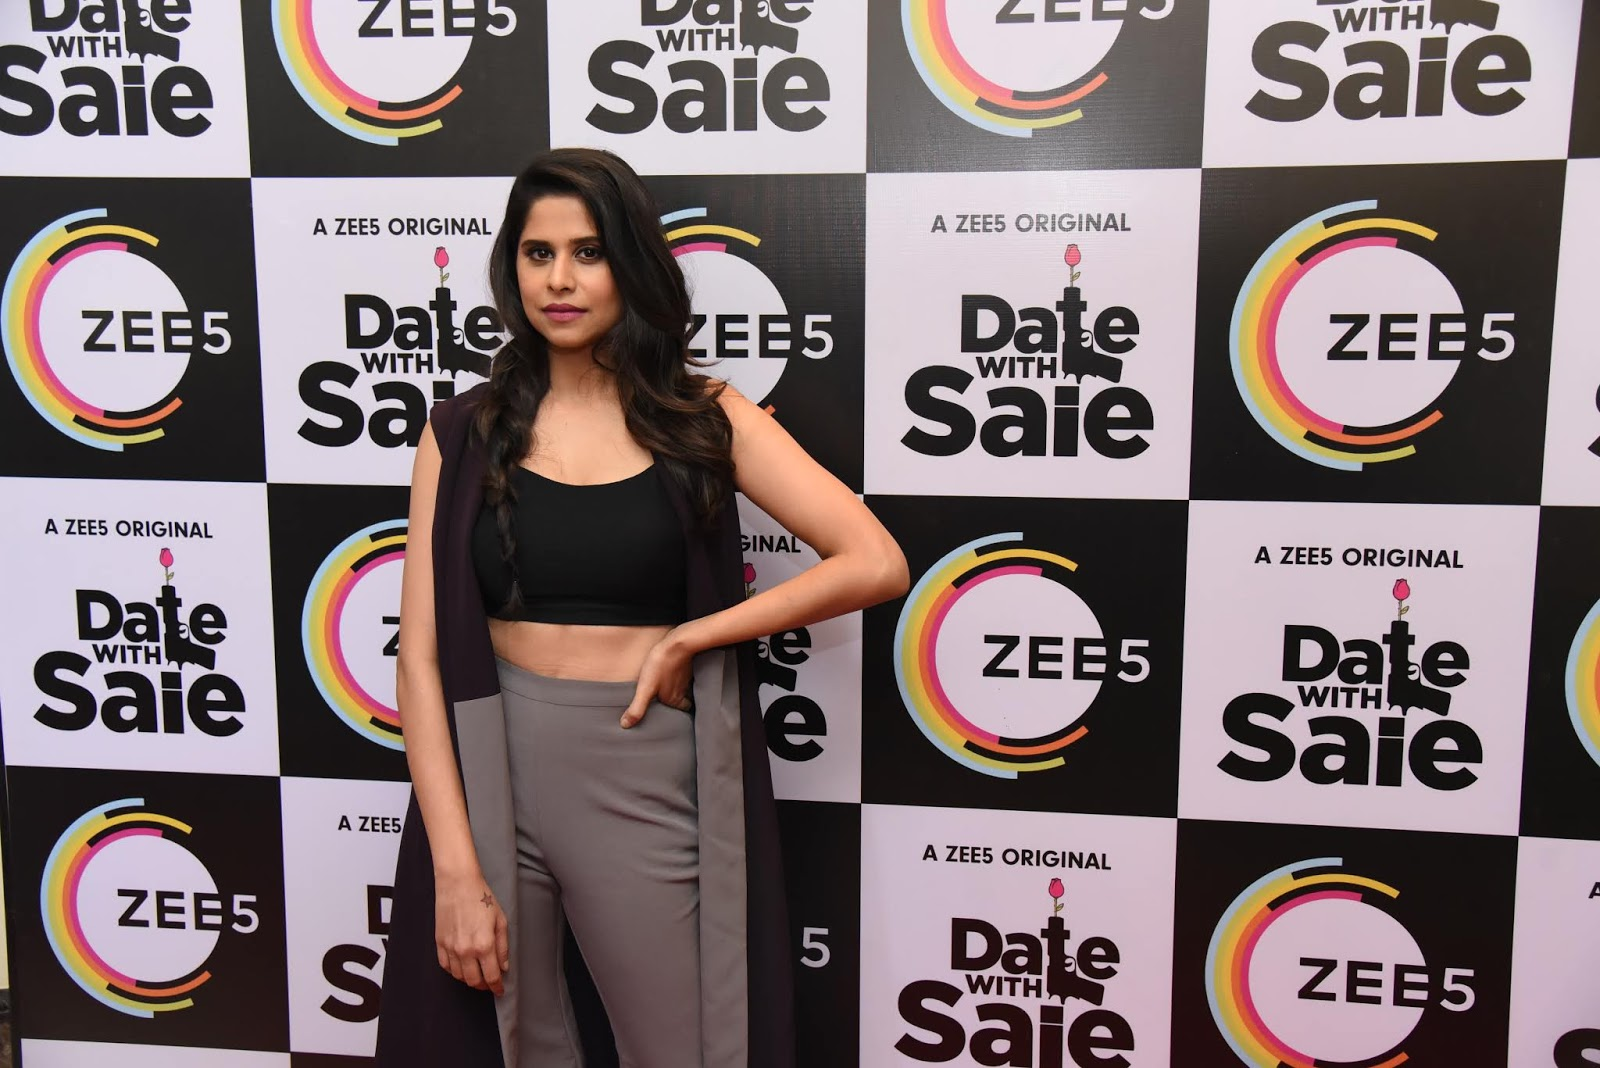 ZEE5 LAUNCHES THEIR MUCH AWAITED SERIES 'DATE WITH SAIE'